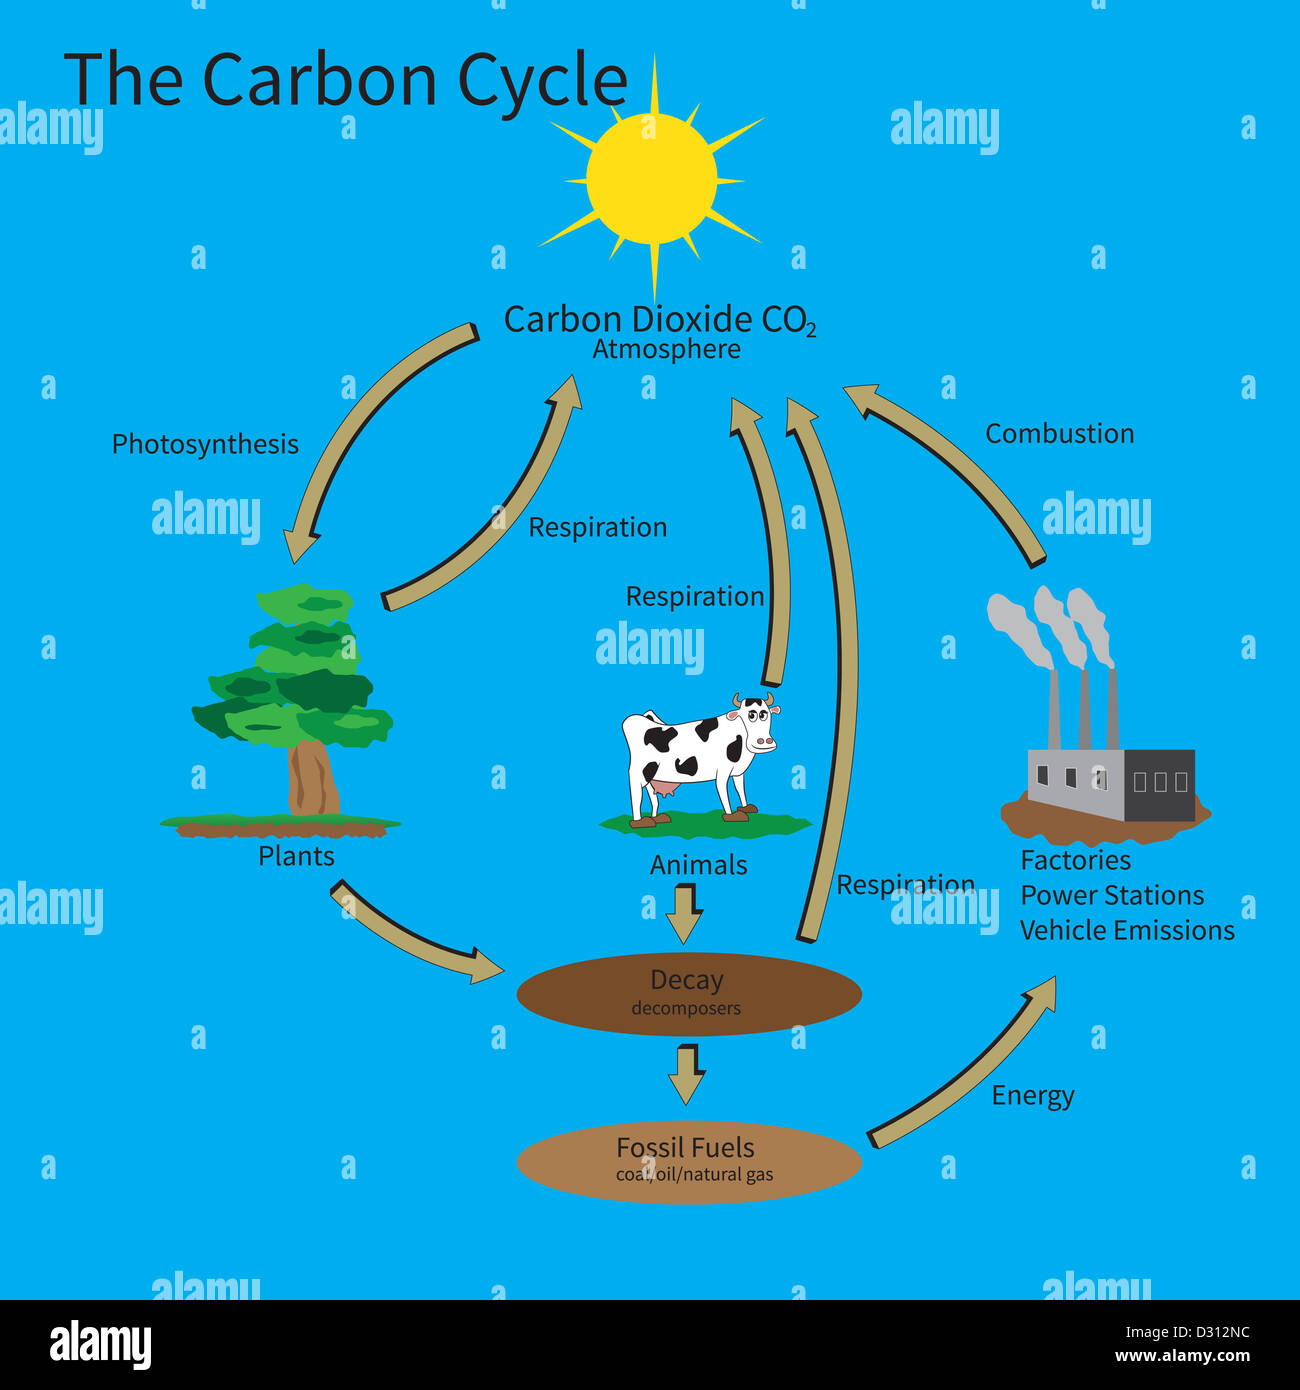 the carbon cycle showing how carbon is recycled in the environment